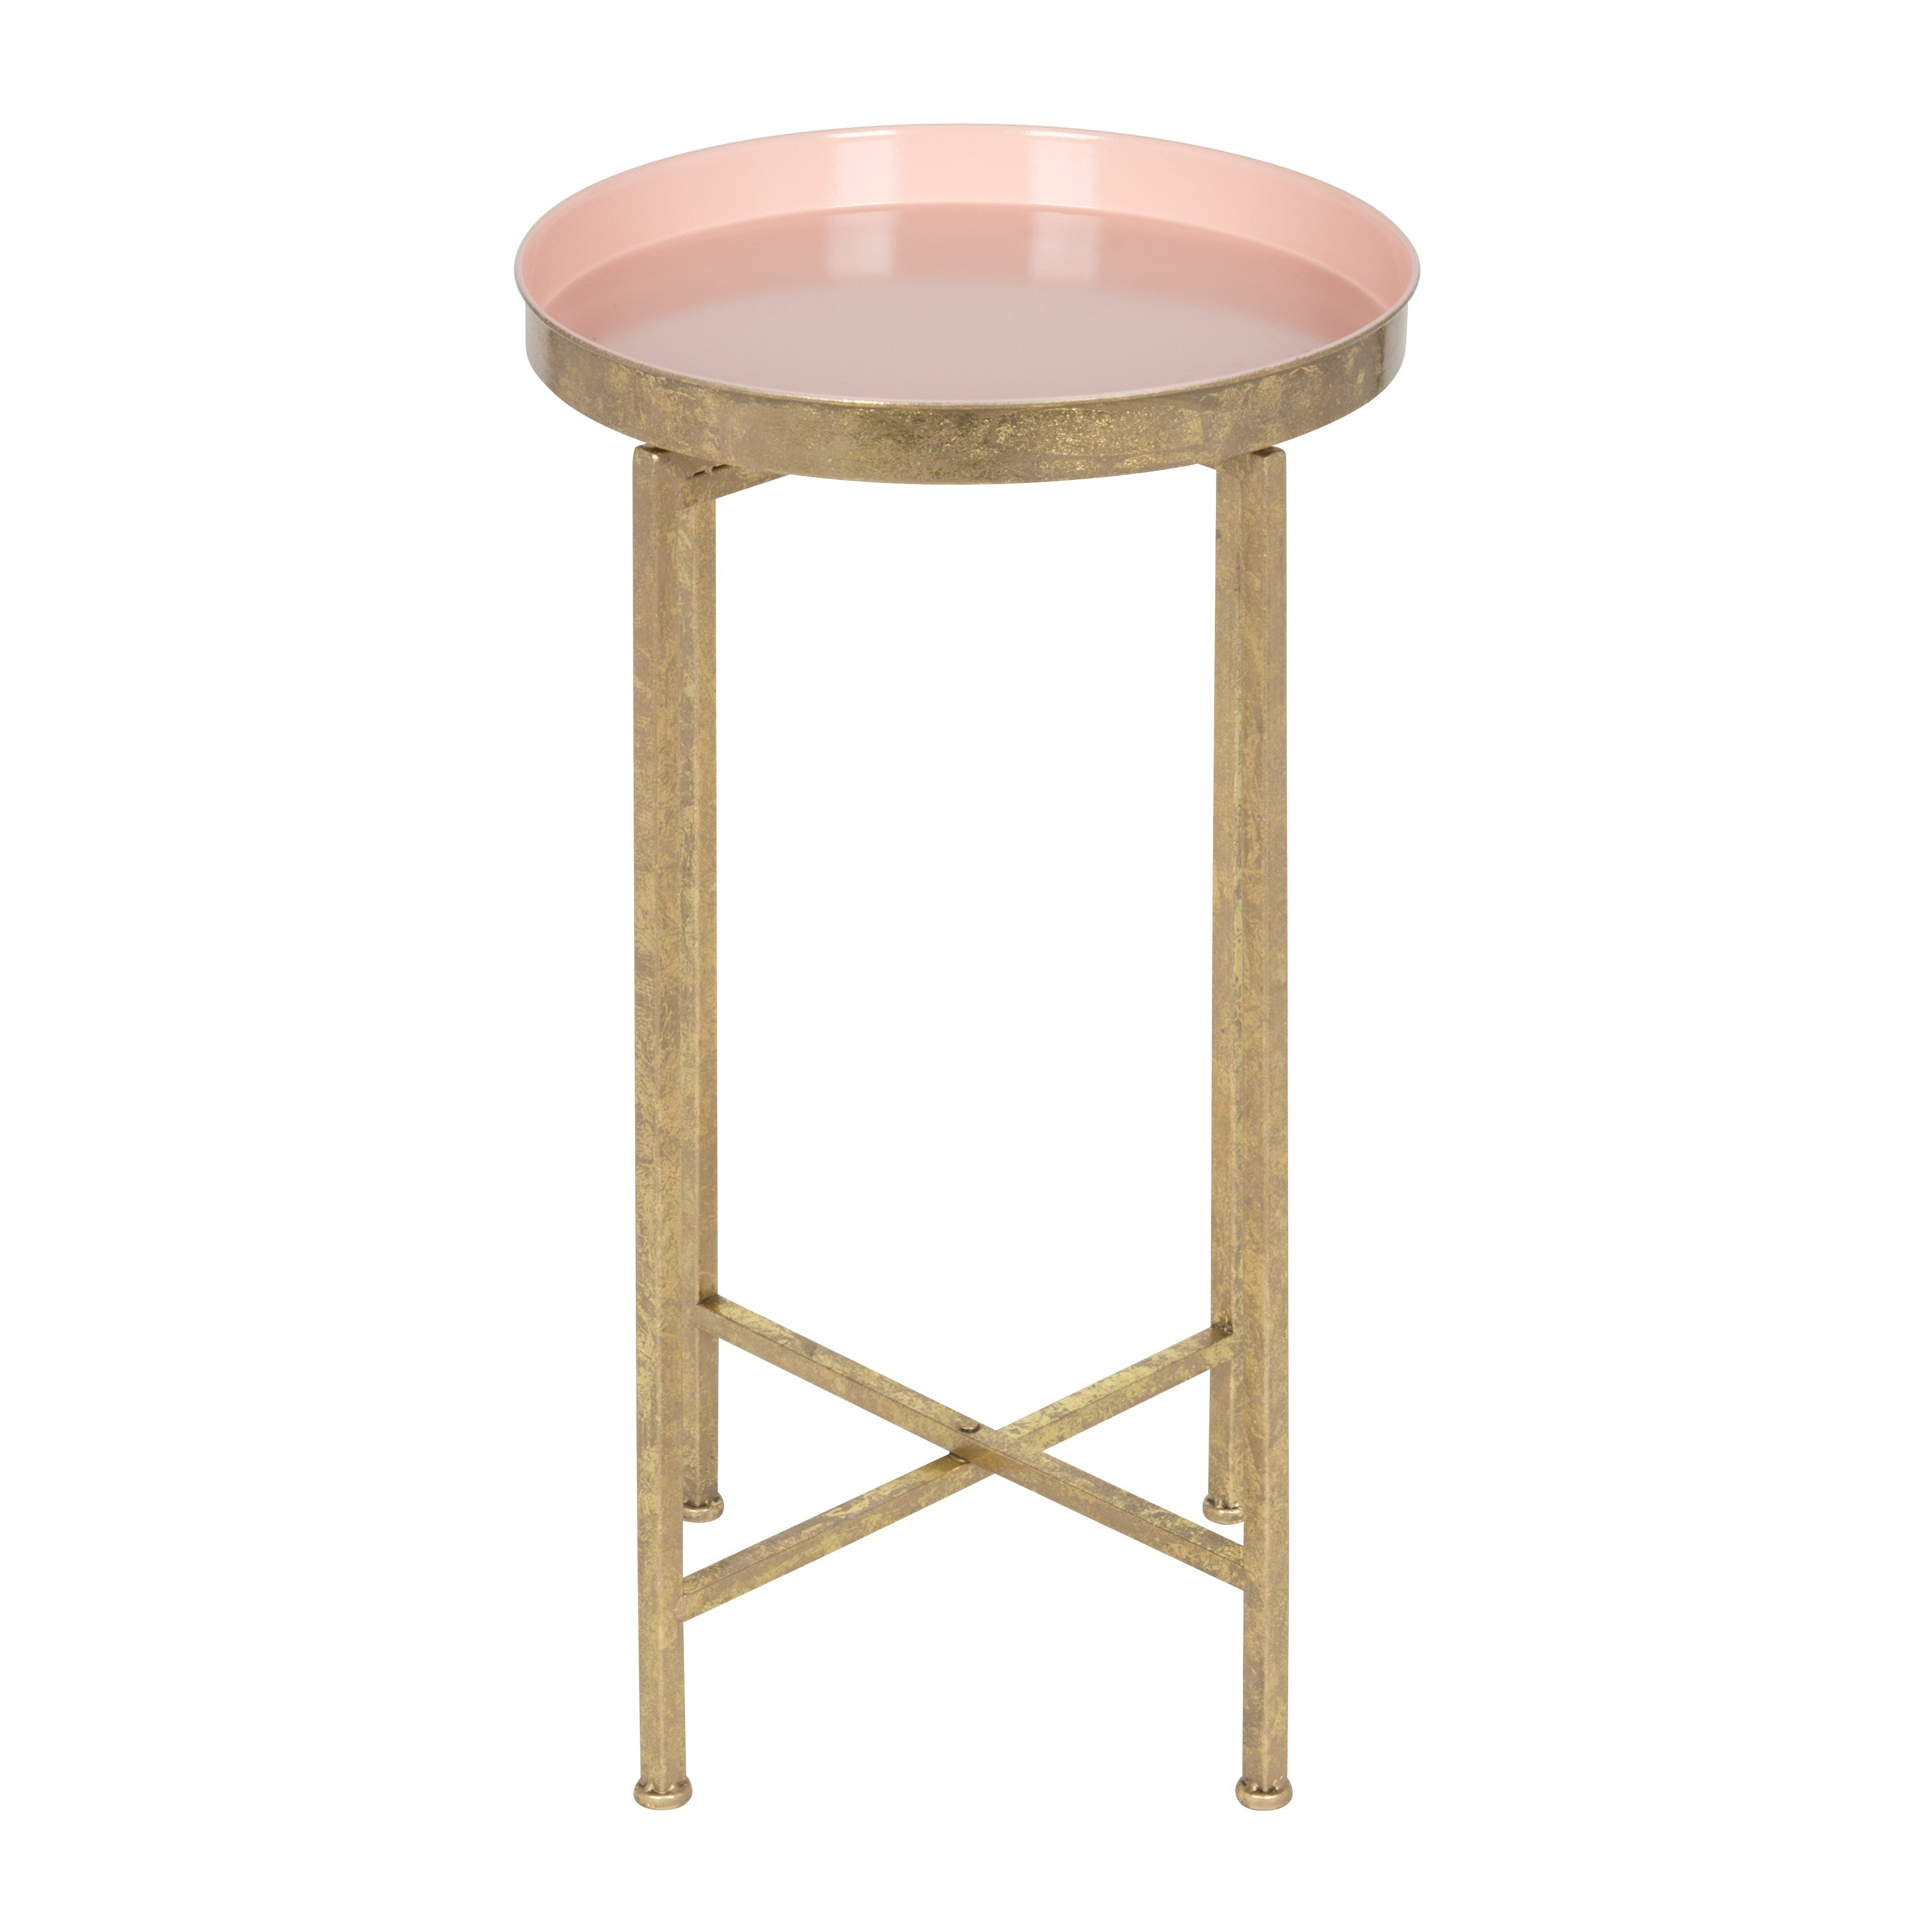 very narrow chair side table millet round metal end small oval accent quickview turquoise console white cabinet jcpenny bedding marble coffee patio furniture inch pier mirrored